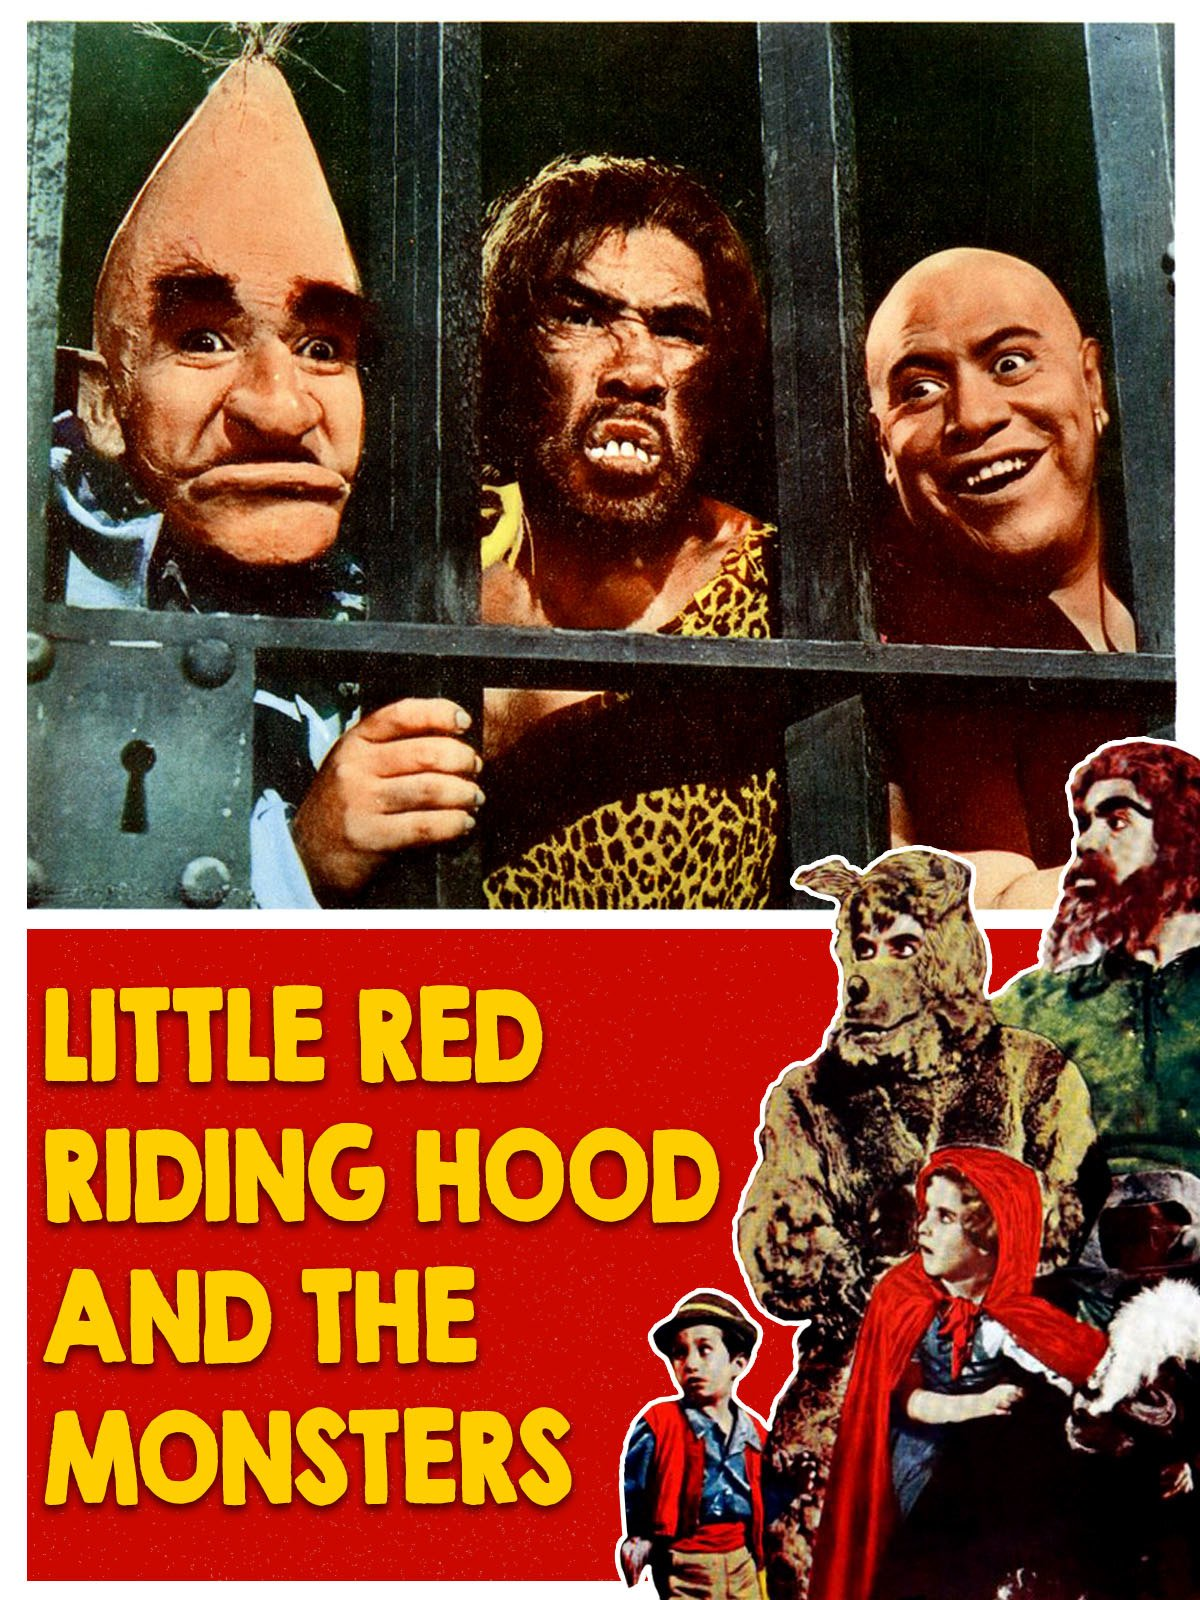 Little Red Riding Hood and the Monsters